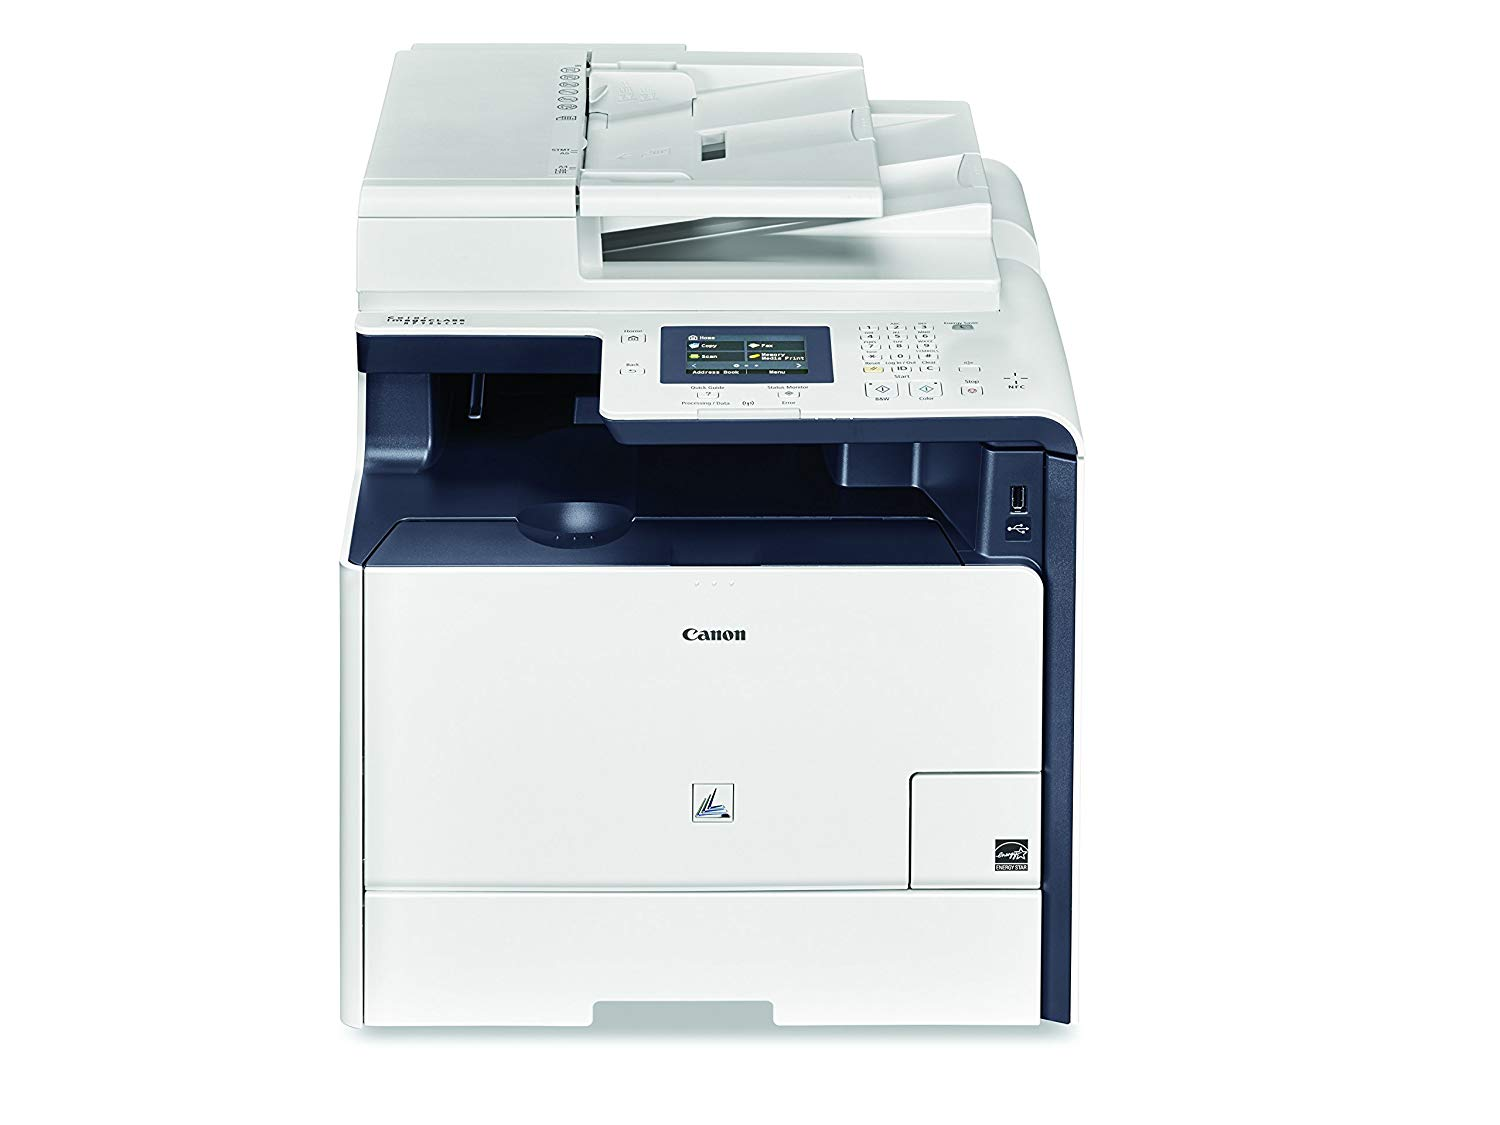 Canon Lasers Color Wireless Color Printer